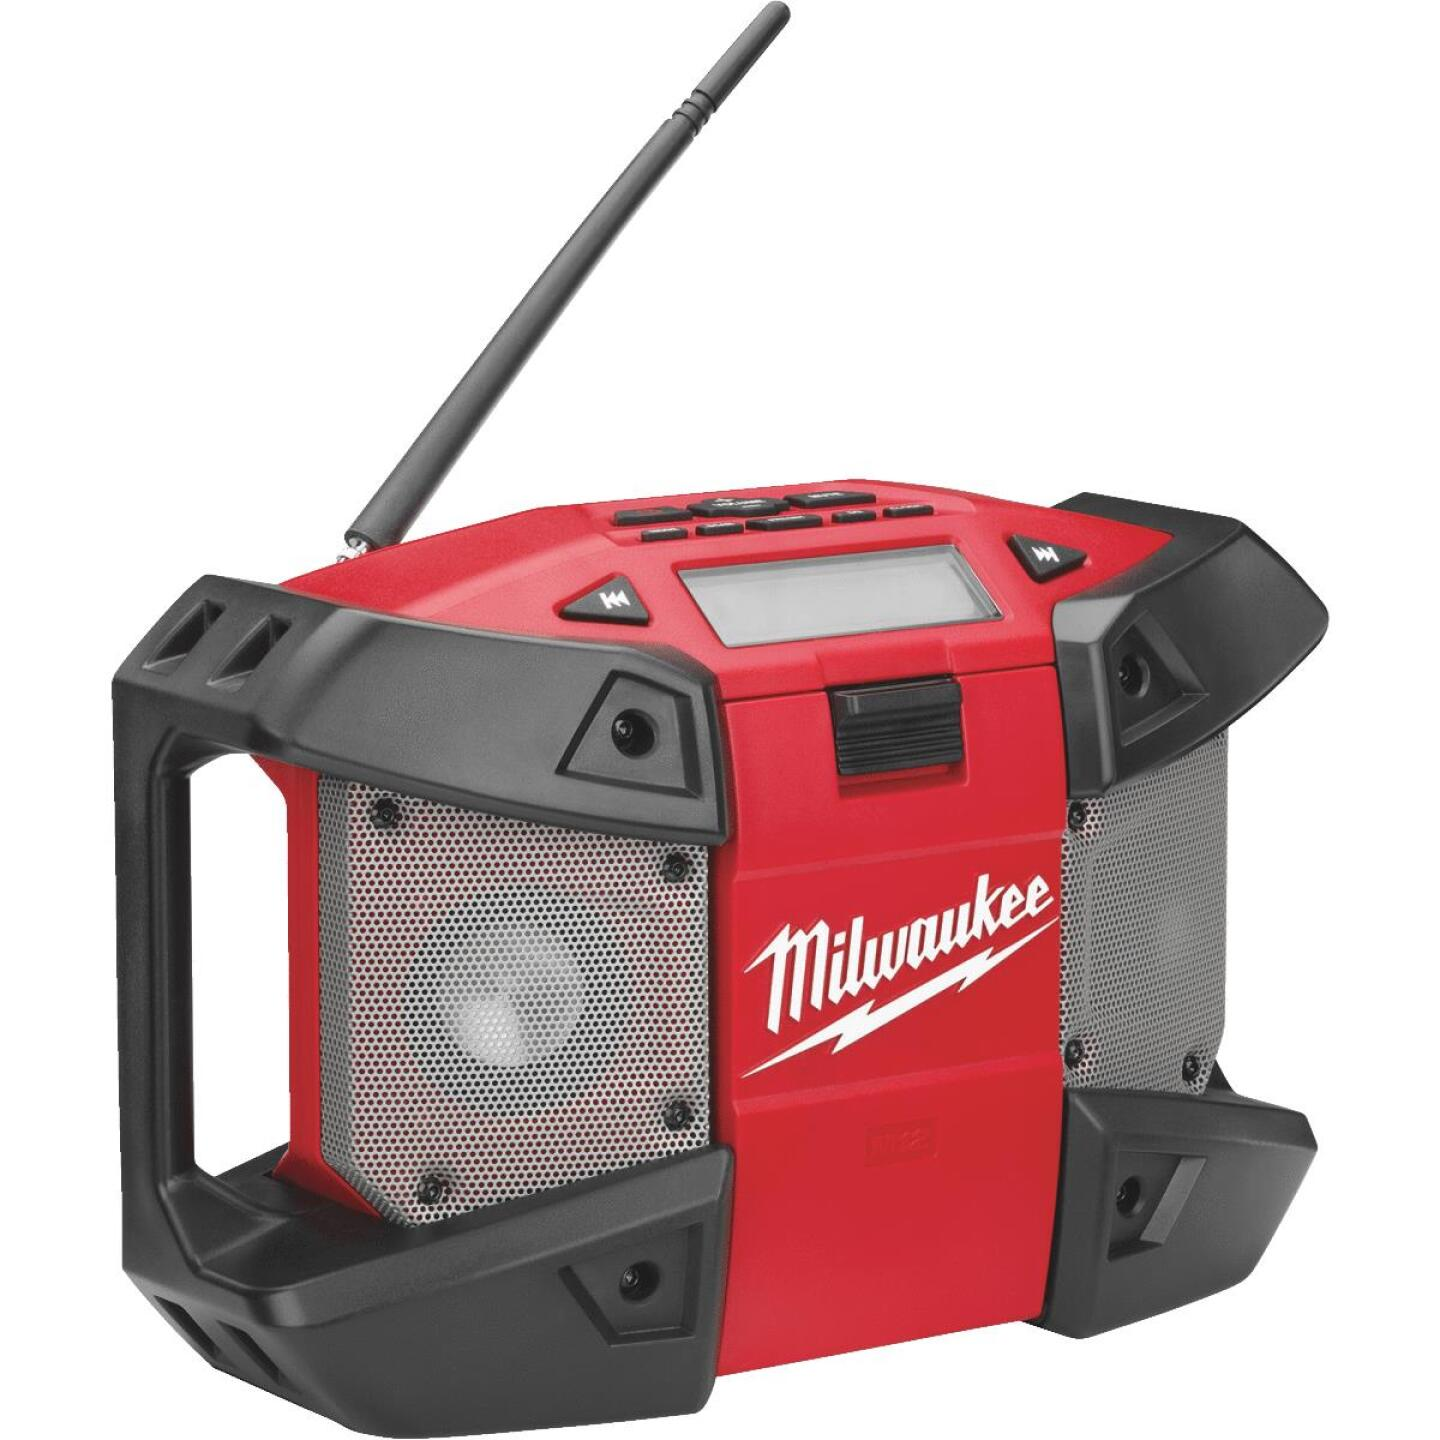 Milwaukee M12 12 Volt Lithium-Ion Cordless Jobsite Radio (Bare Tool) Image 4